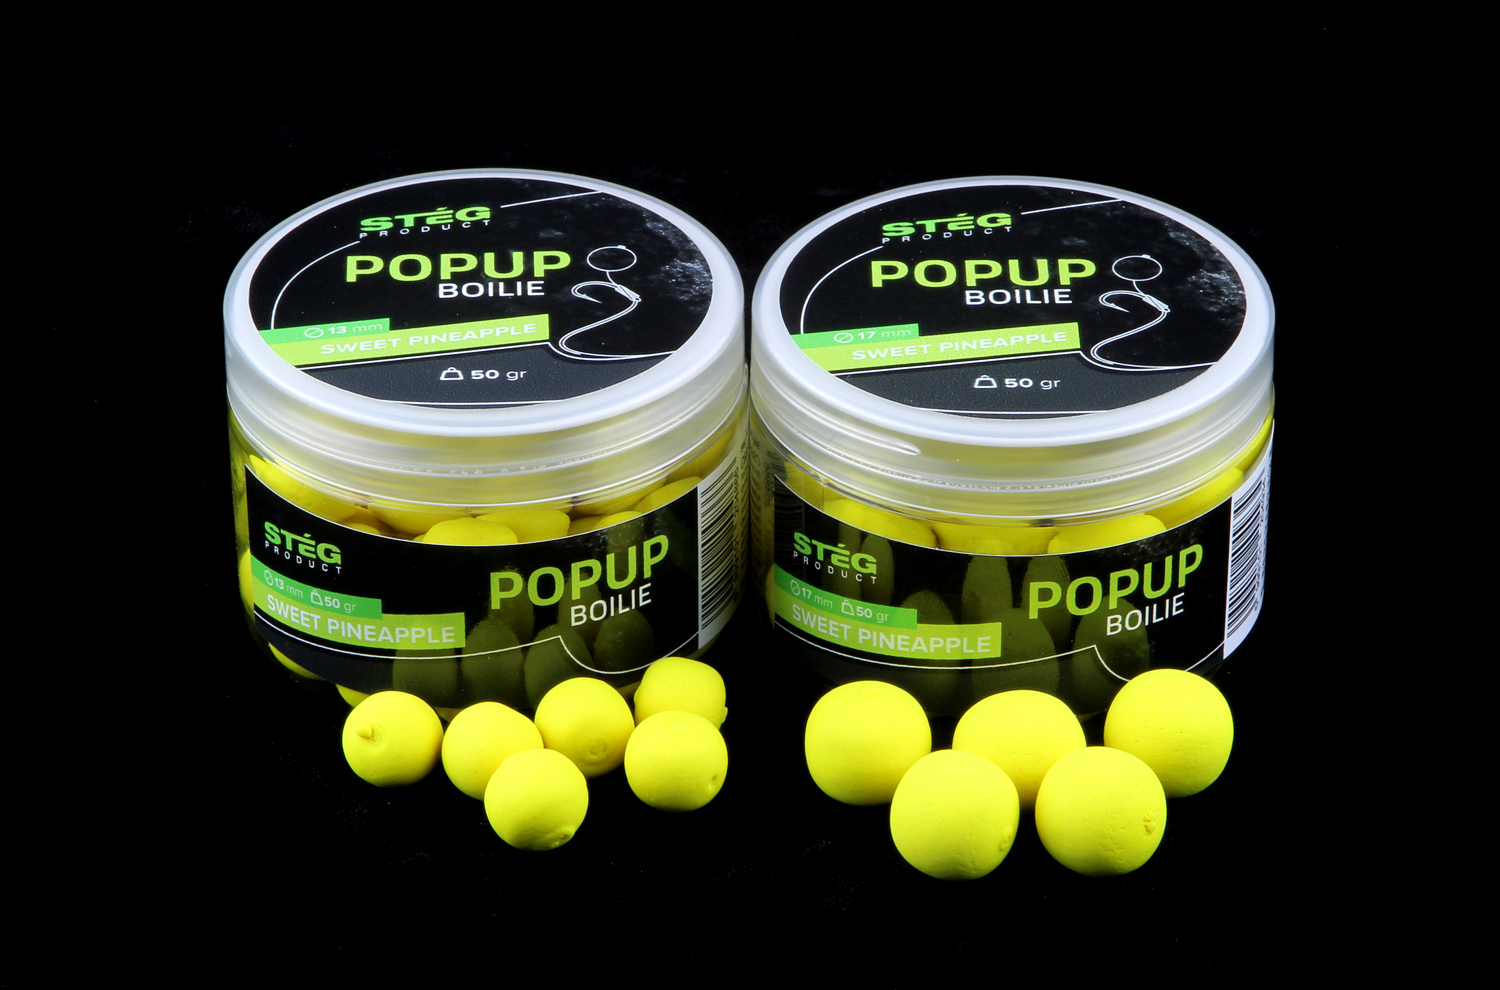 STEG FLUO POP UP BOILIE 13MM - SWEET PINEAPPLE